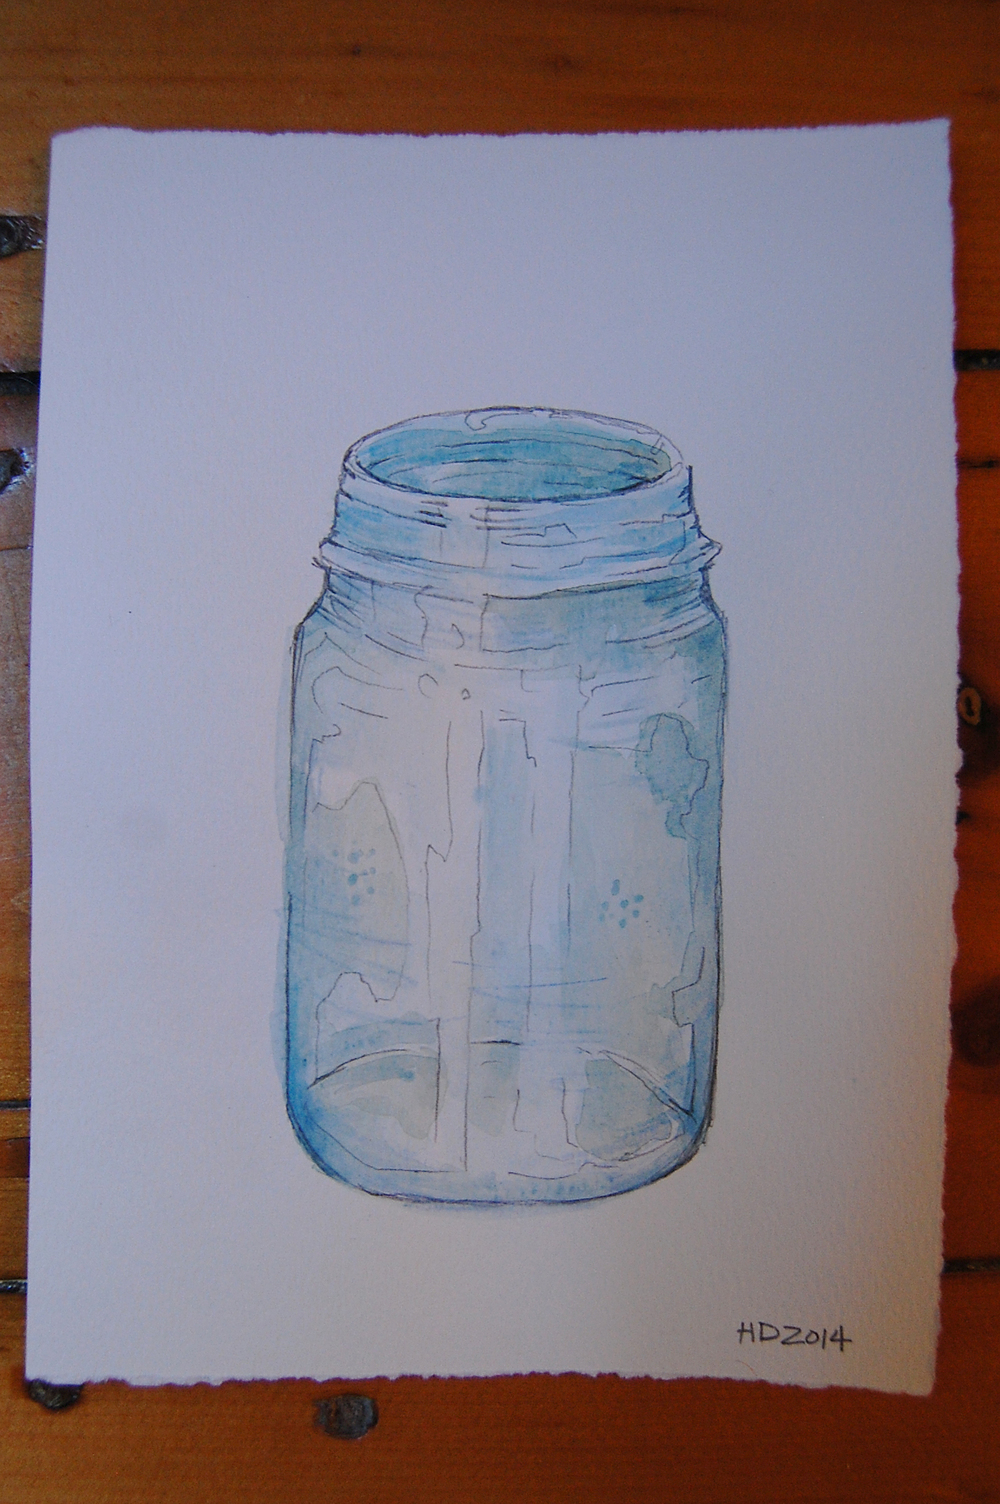 illustration-masonjar-1.JPG